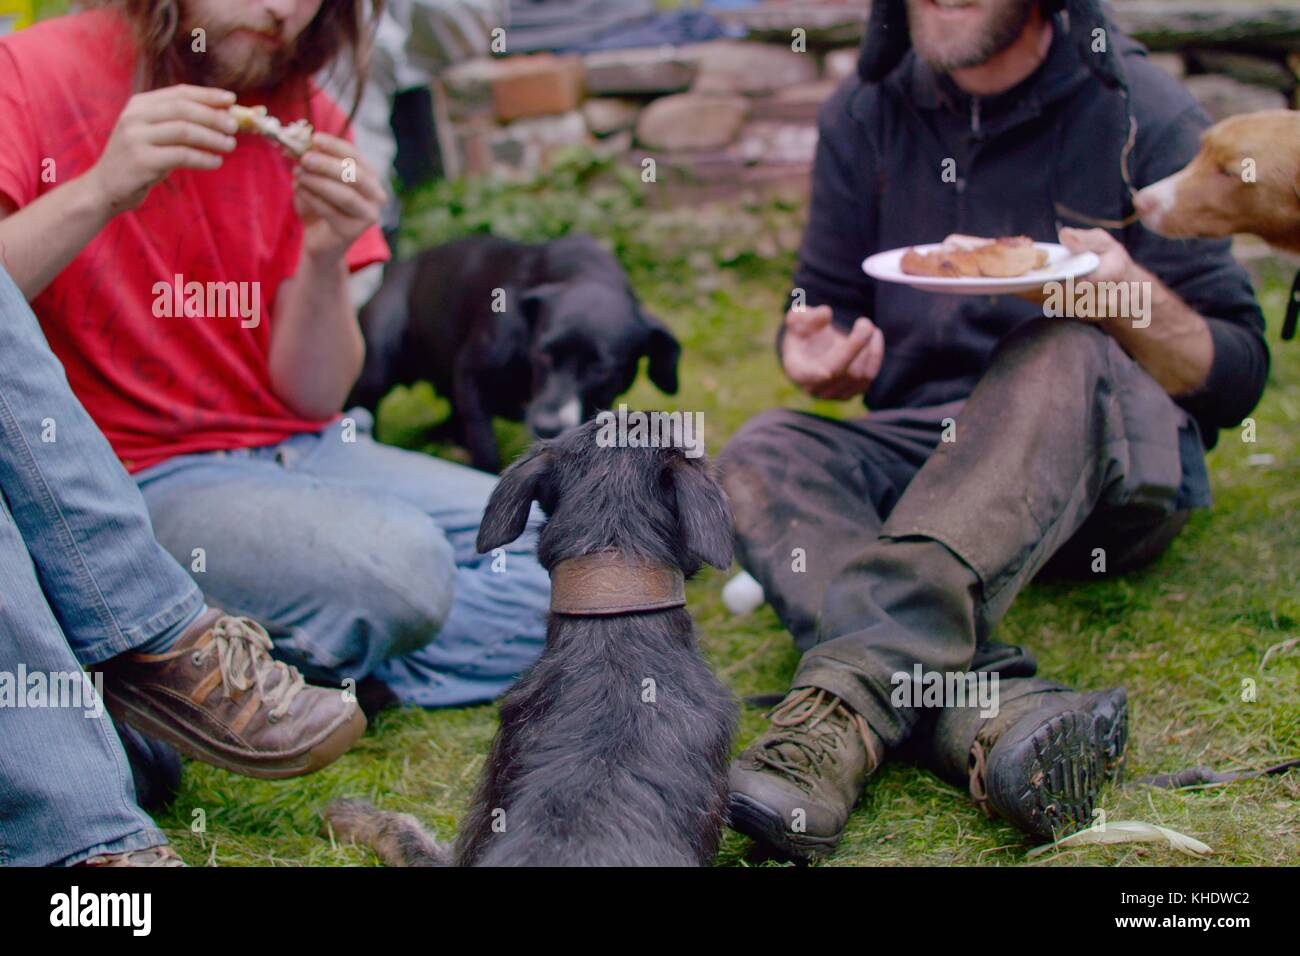 People eating, sat on the ground with dogs waiting for food scraps, Wales, UK - Stock Image